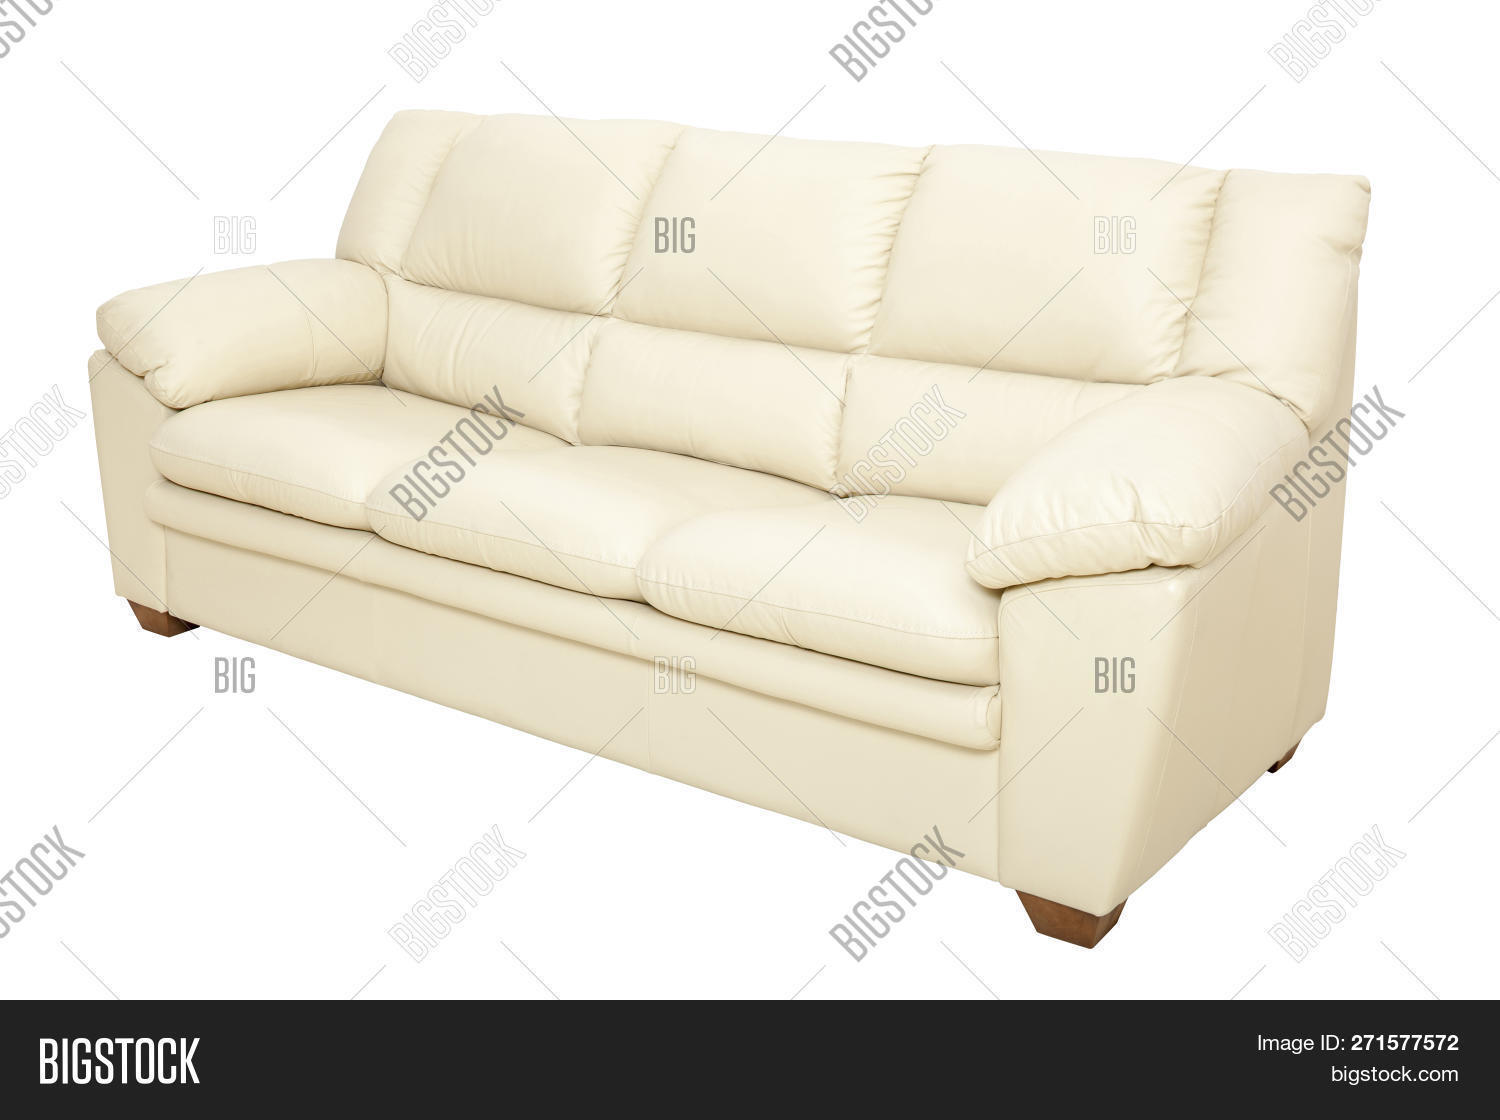 Pleasing Three Seats Cozy Image Photo Free Trial Bigstock Pdpeps Interior Chair Design Pdpepsorg